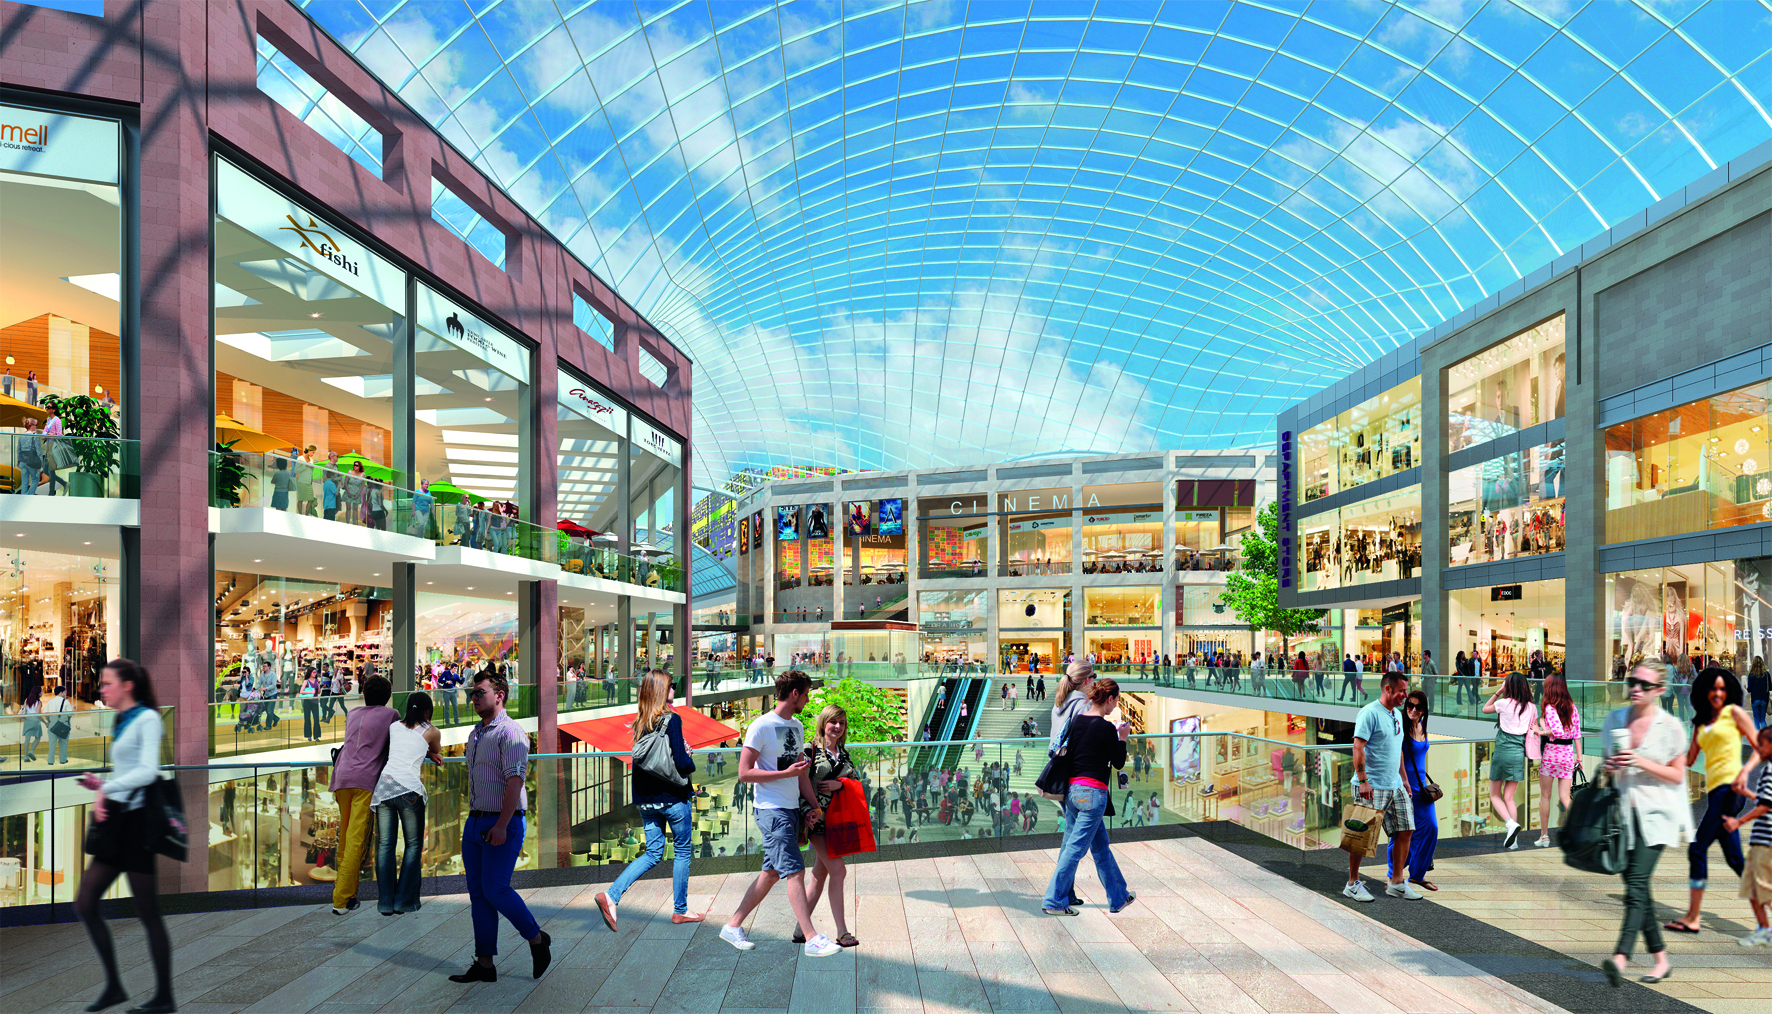 An artist's impression of the Brent Cross redevelopment